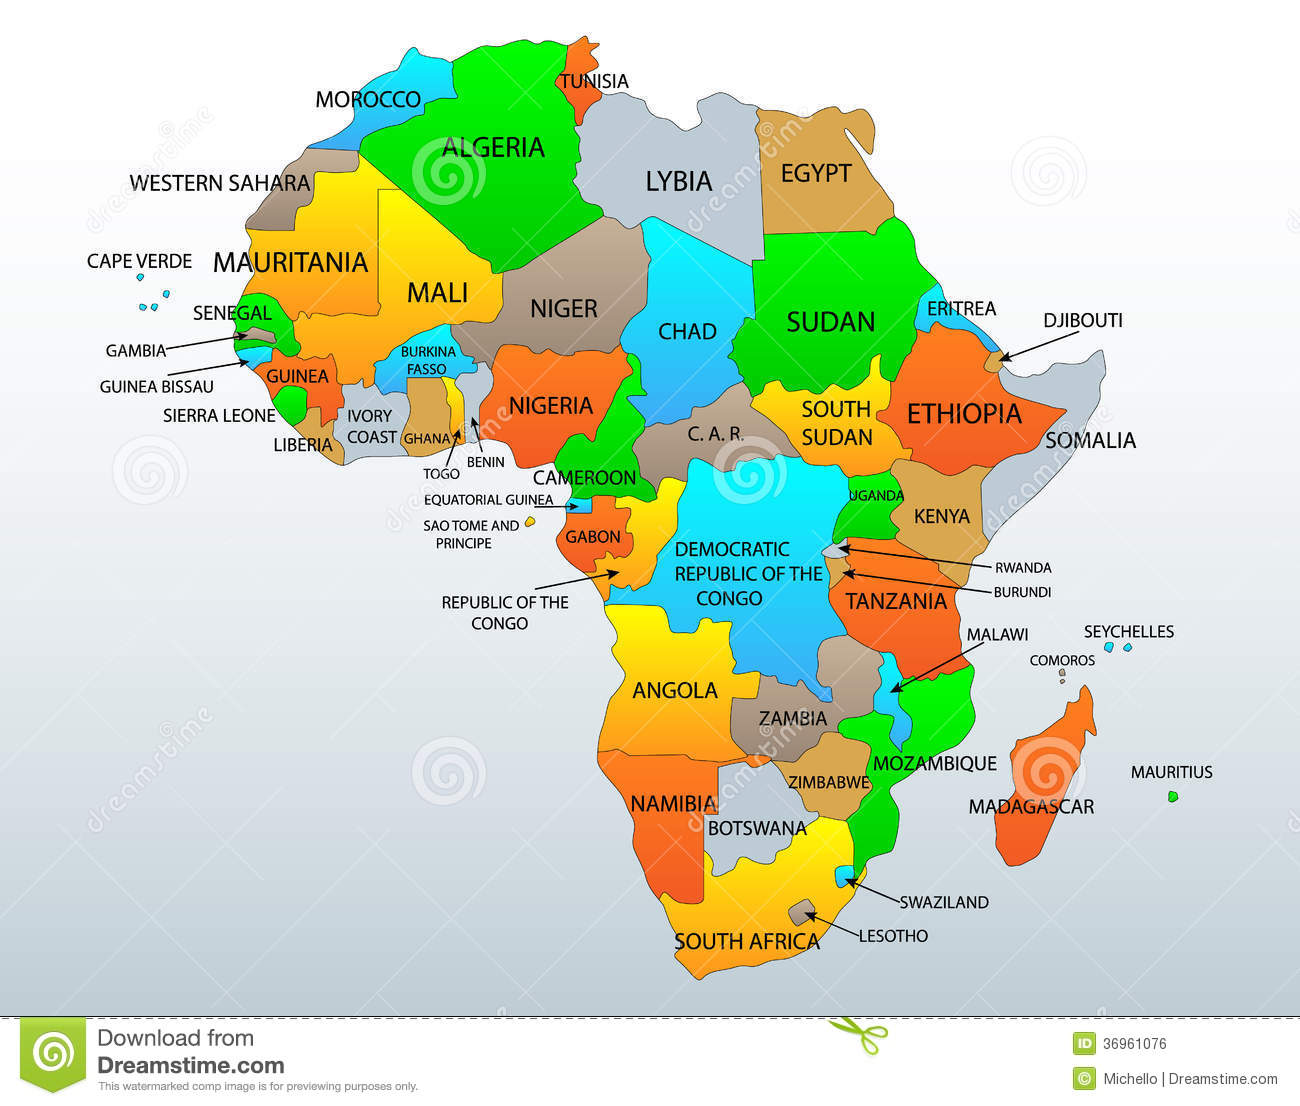 Map Of Africa And Surrounding Countries.Political Map Of Africa Stock Vector Illustration Of Countries